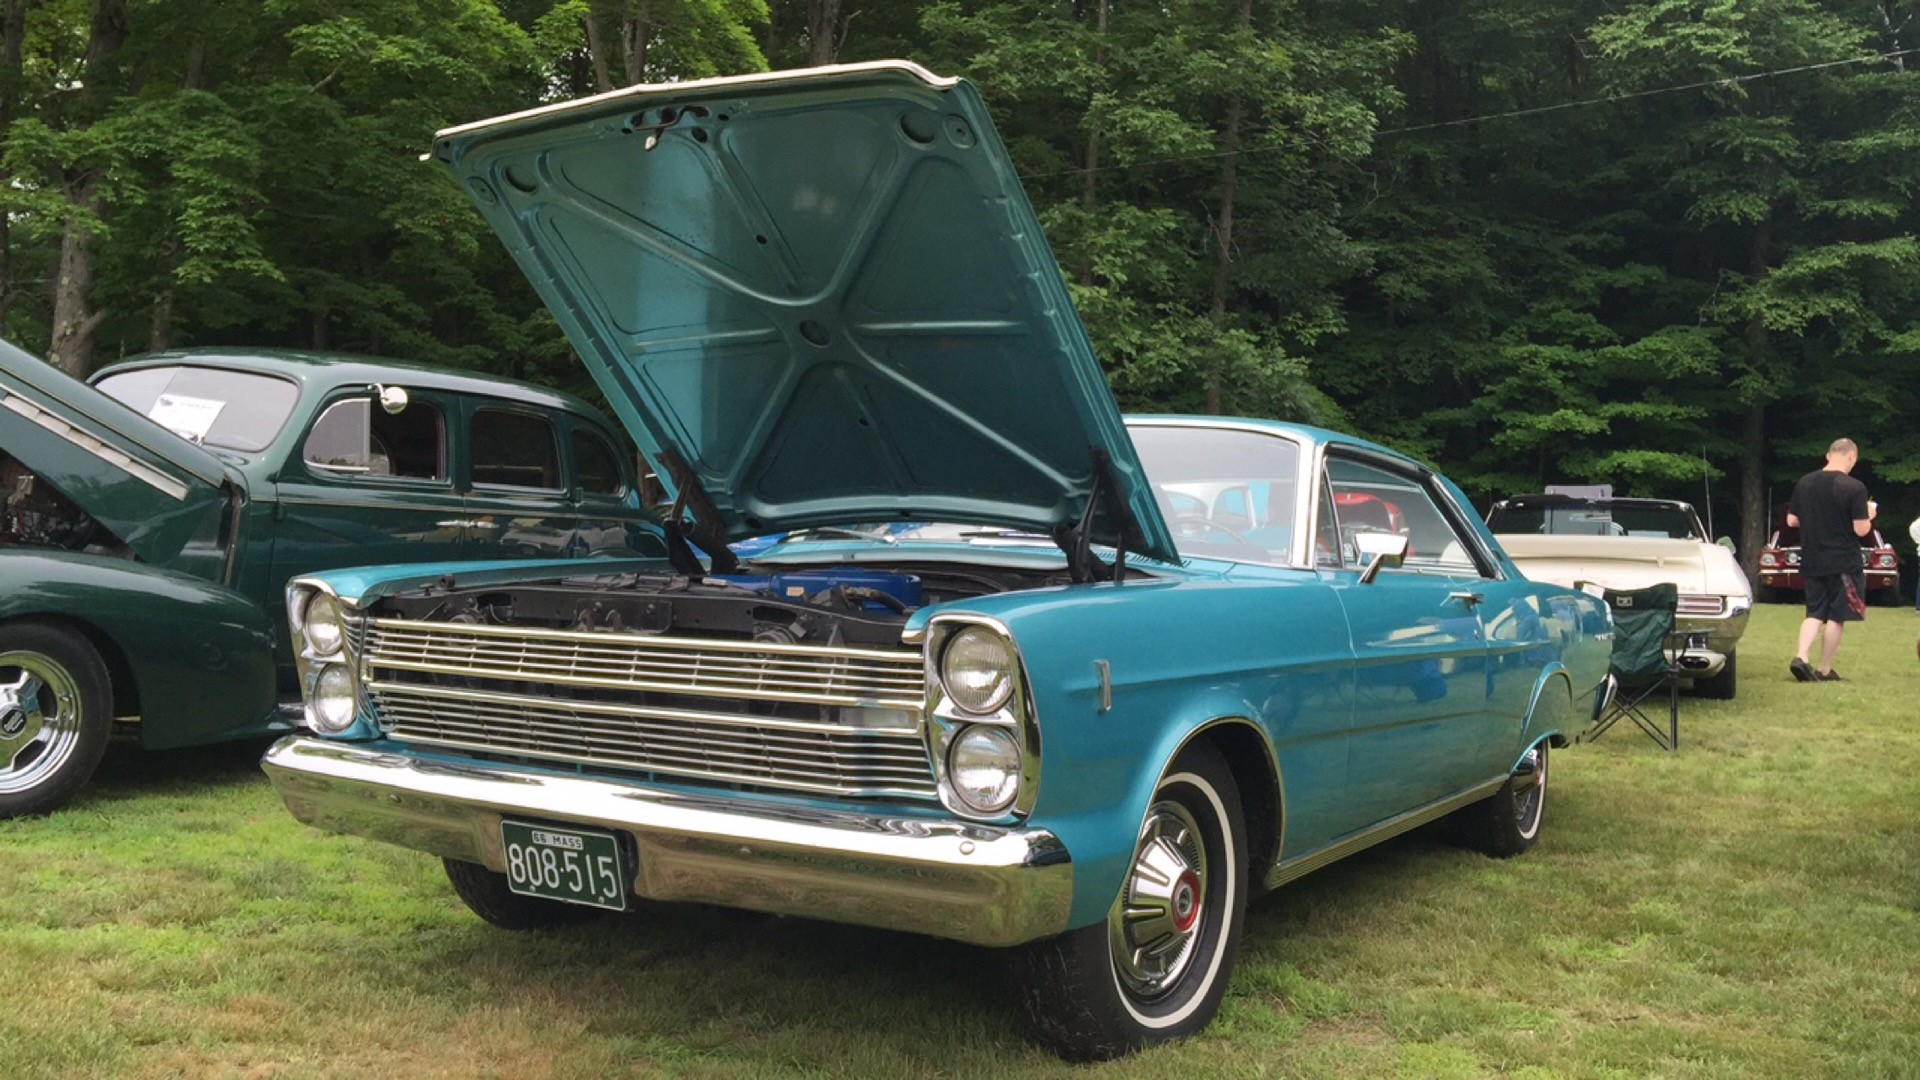 Hot Rods For Heroes 2015 Gallery Bertera Auto Group Blogs